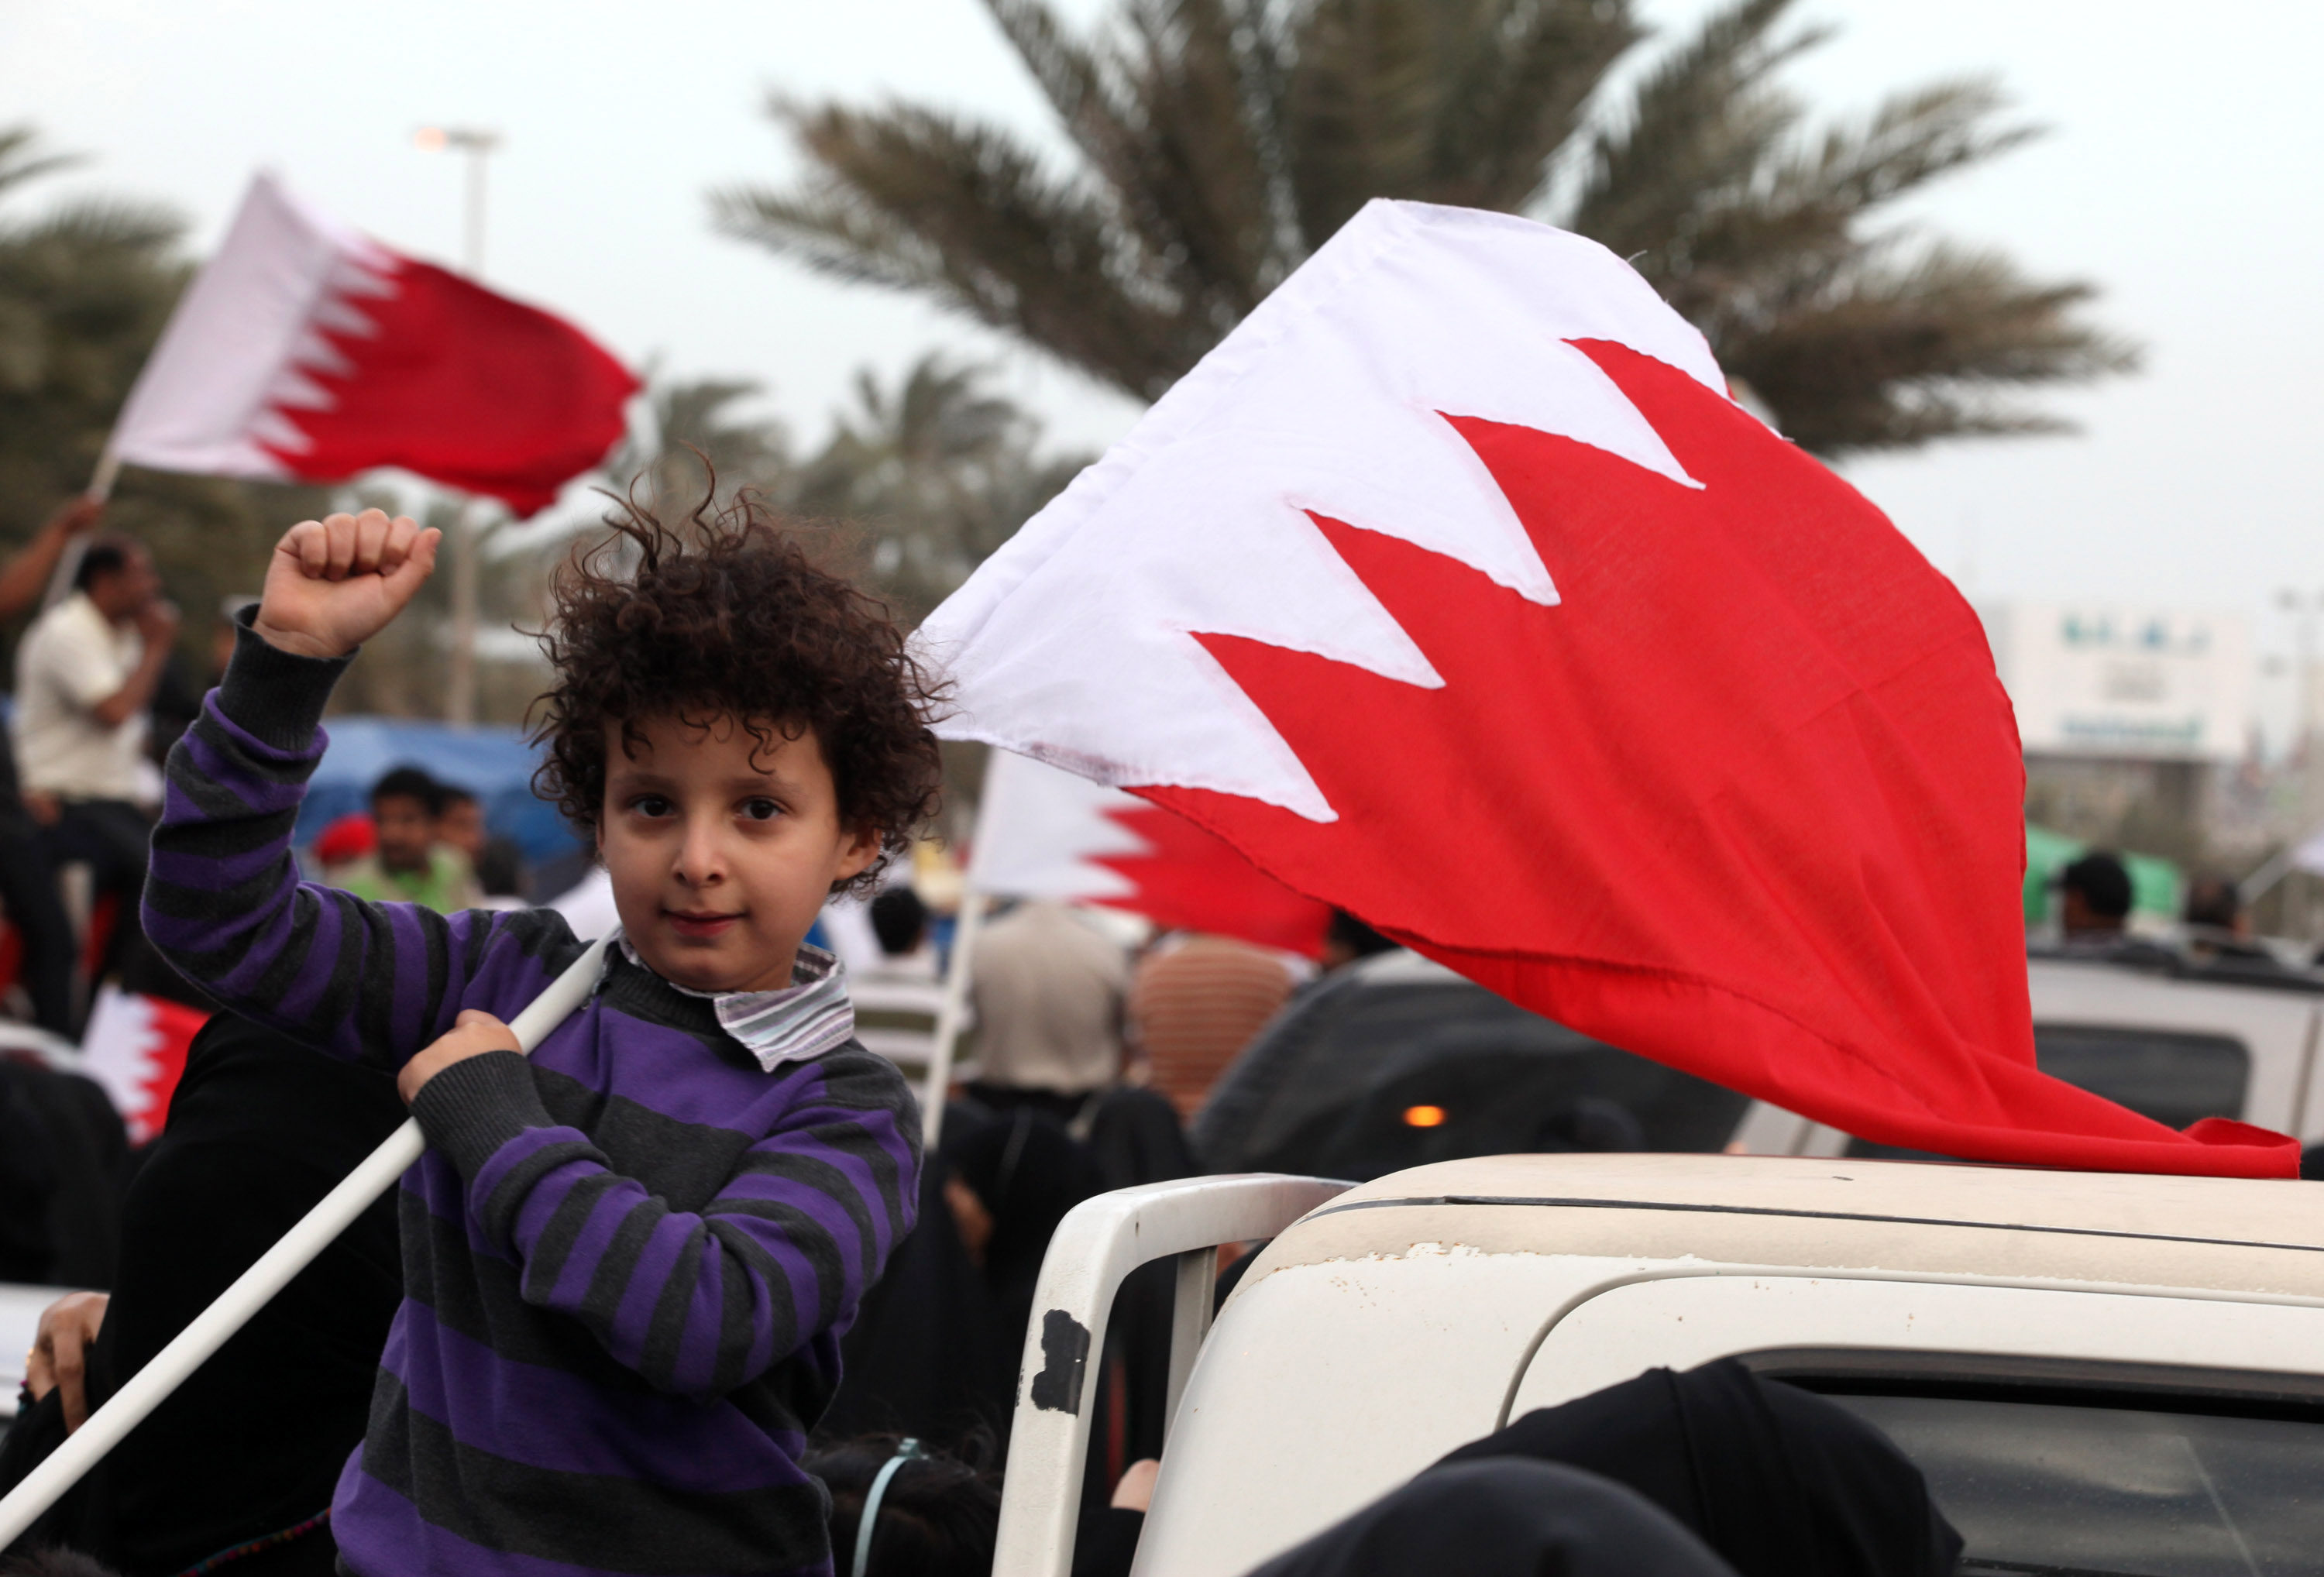 Bahraini predominantly Shiite protesters wave their national flag as they take part in an anti-regime rally at Pearl Square, the focal point of demonstrations for over two weeks, in Manama, Bahrain on March 1, 2011.  UPI/ Isa Ebrahim